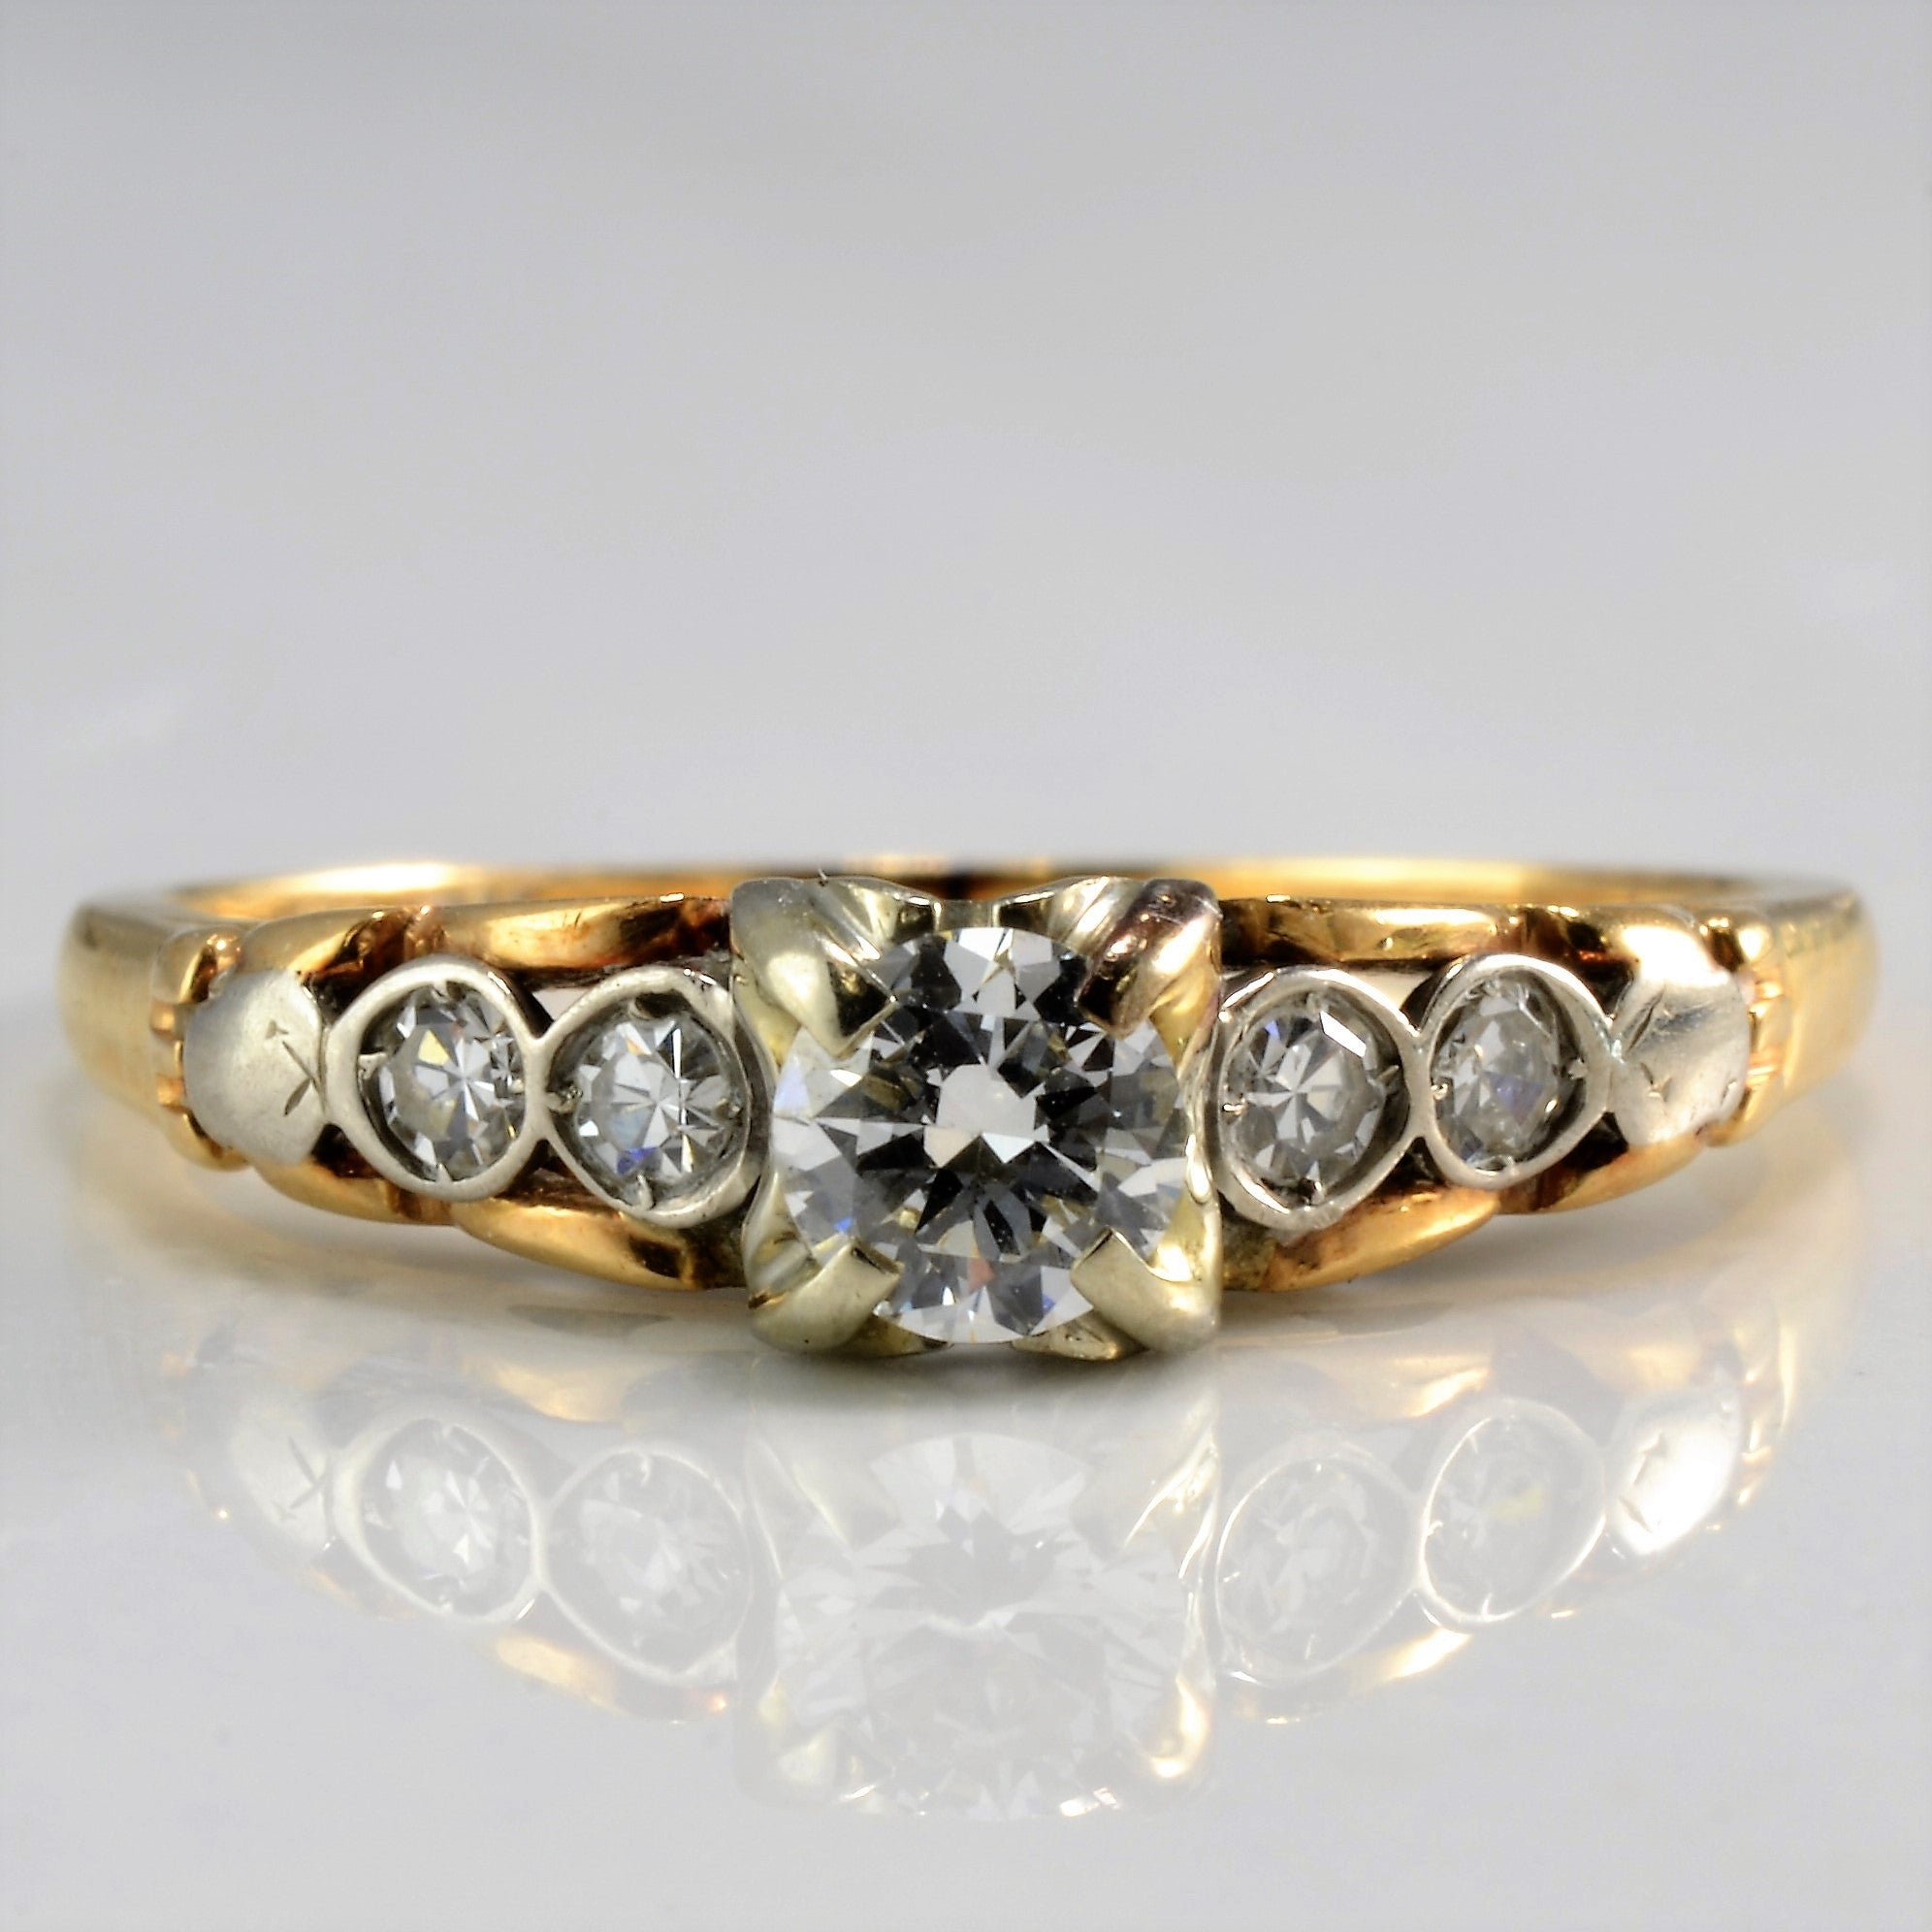 Retro Diamond Engagement Ring | 0.26 ctw, SZ 5.5 |